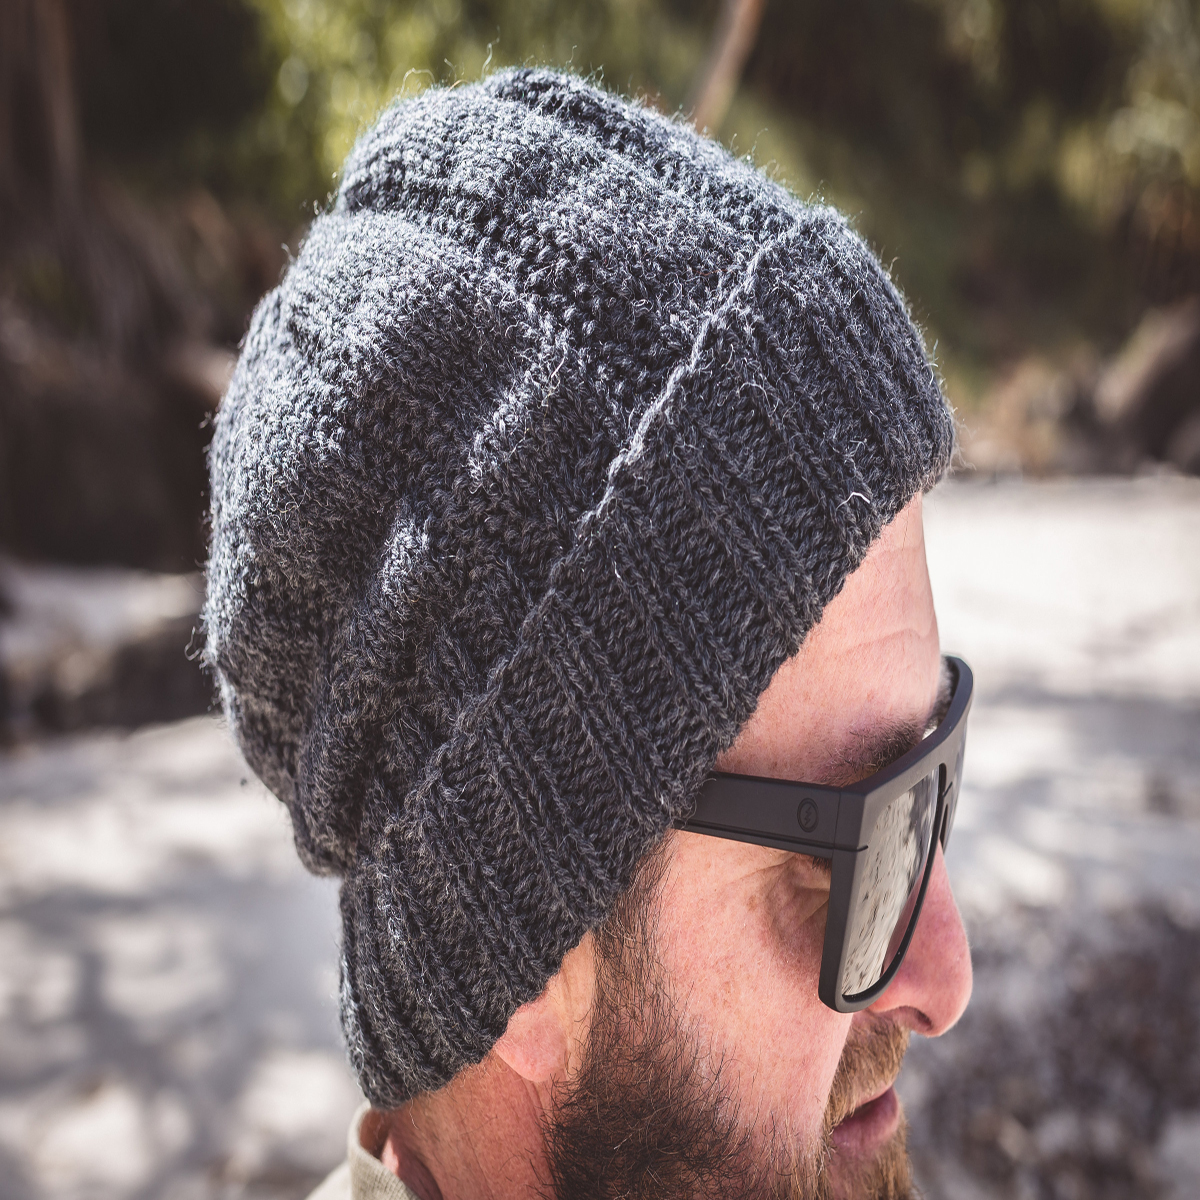 Men Charcoal Wool Knit Beanie With Foldable Brim By SiennaKnits